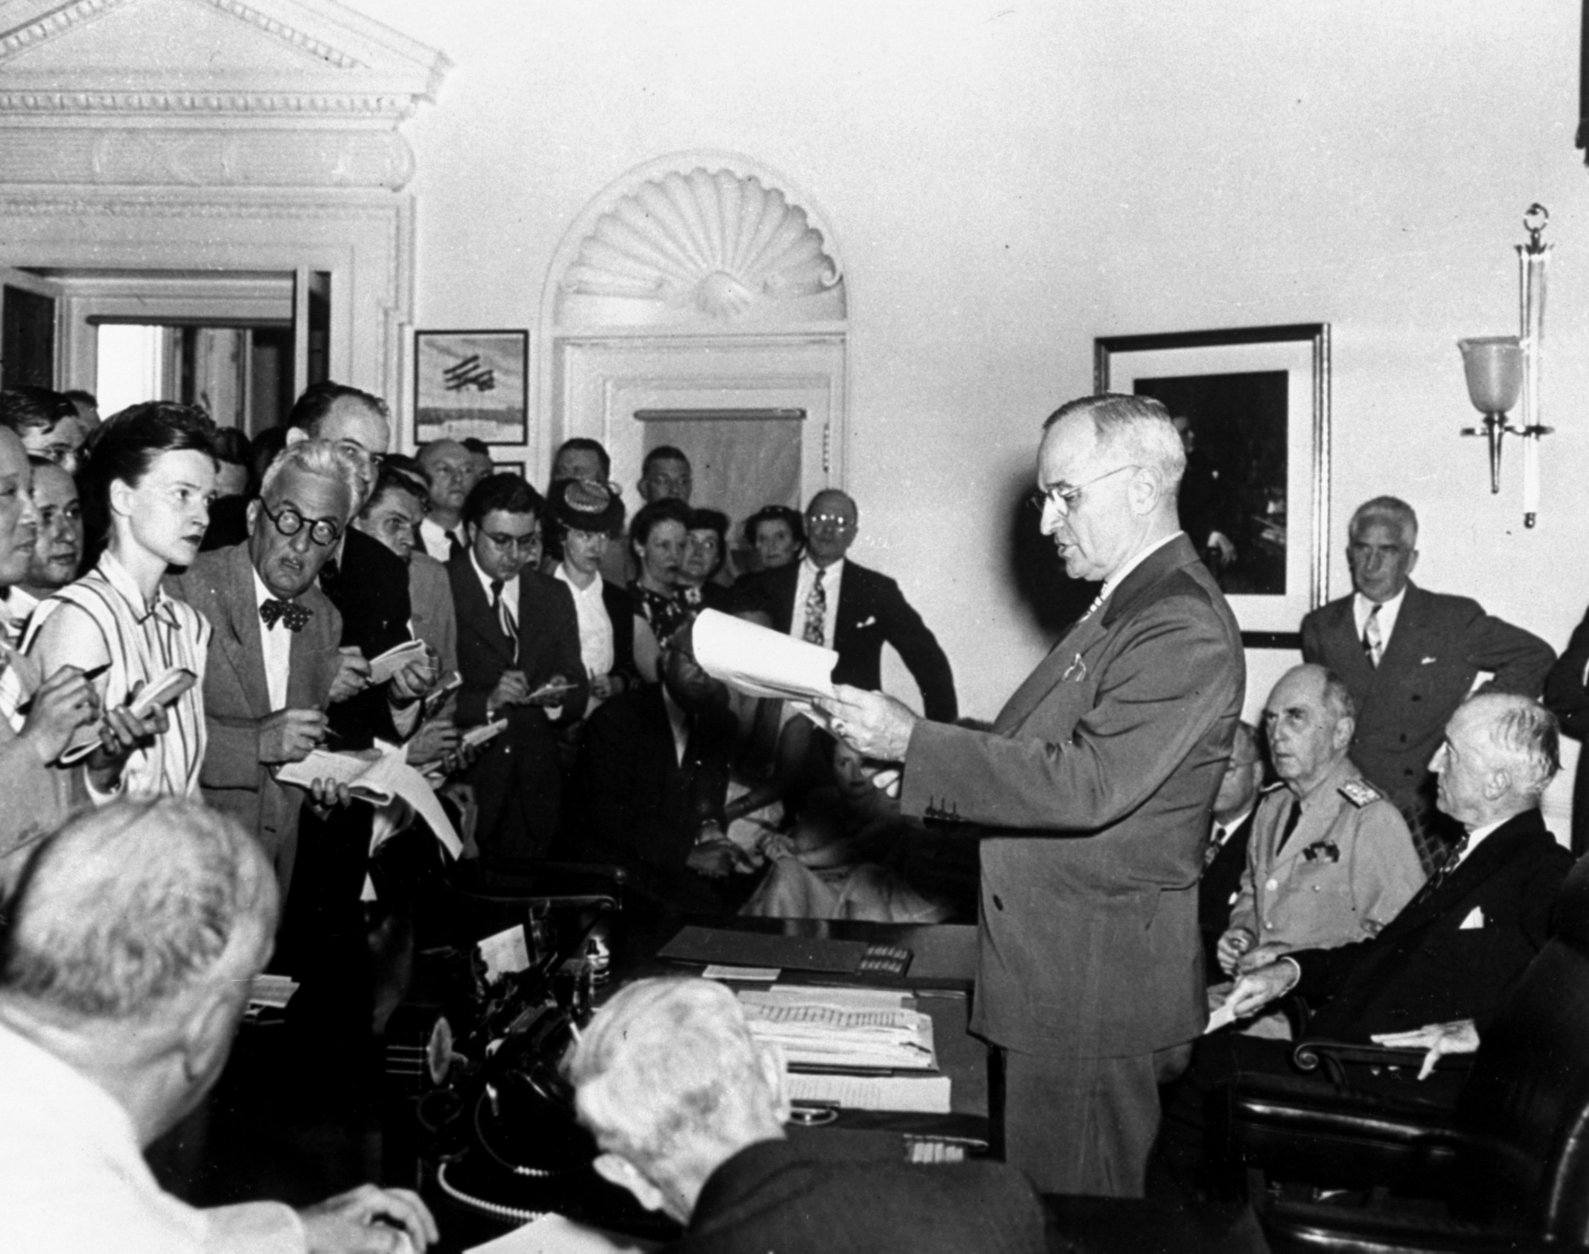 FILE - In this Tuesday, Aug. 14, 1945 picture, U.S. President Harry S. Truman stands at his desk during a news conference in the White House in Washington announcing the Japanese surrender, officially signaling the war's end.  World War II veterans, their families and officials marked the 65th anniversary of the end of that war on board the same ship where Japan formally surrendered in 1945.  (AP Photo/File)